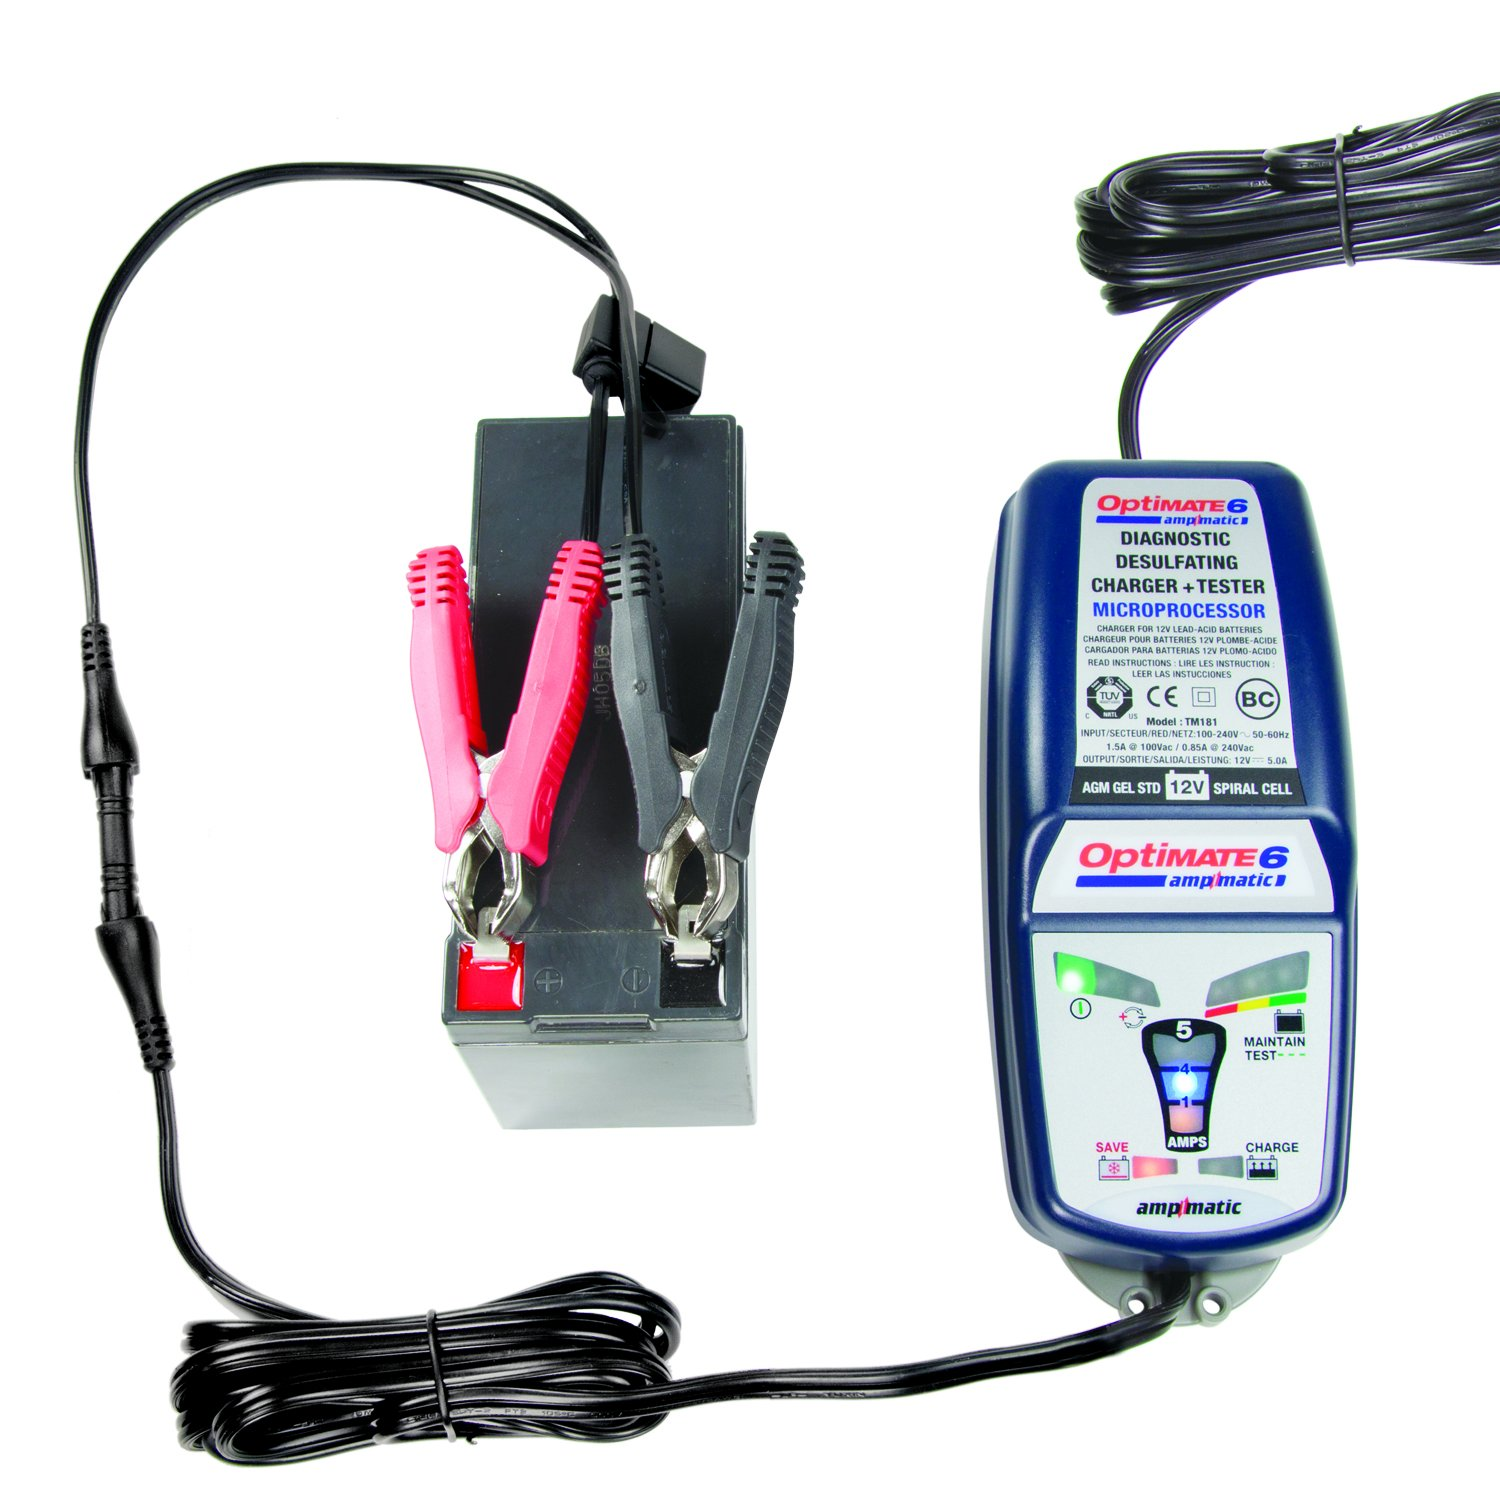 Optimate 6 Ampmatic Tm 181 9 Step 12v 5a Battery Desulphation Progress Monitor Saving Charger Tester Maintainer Automotive